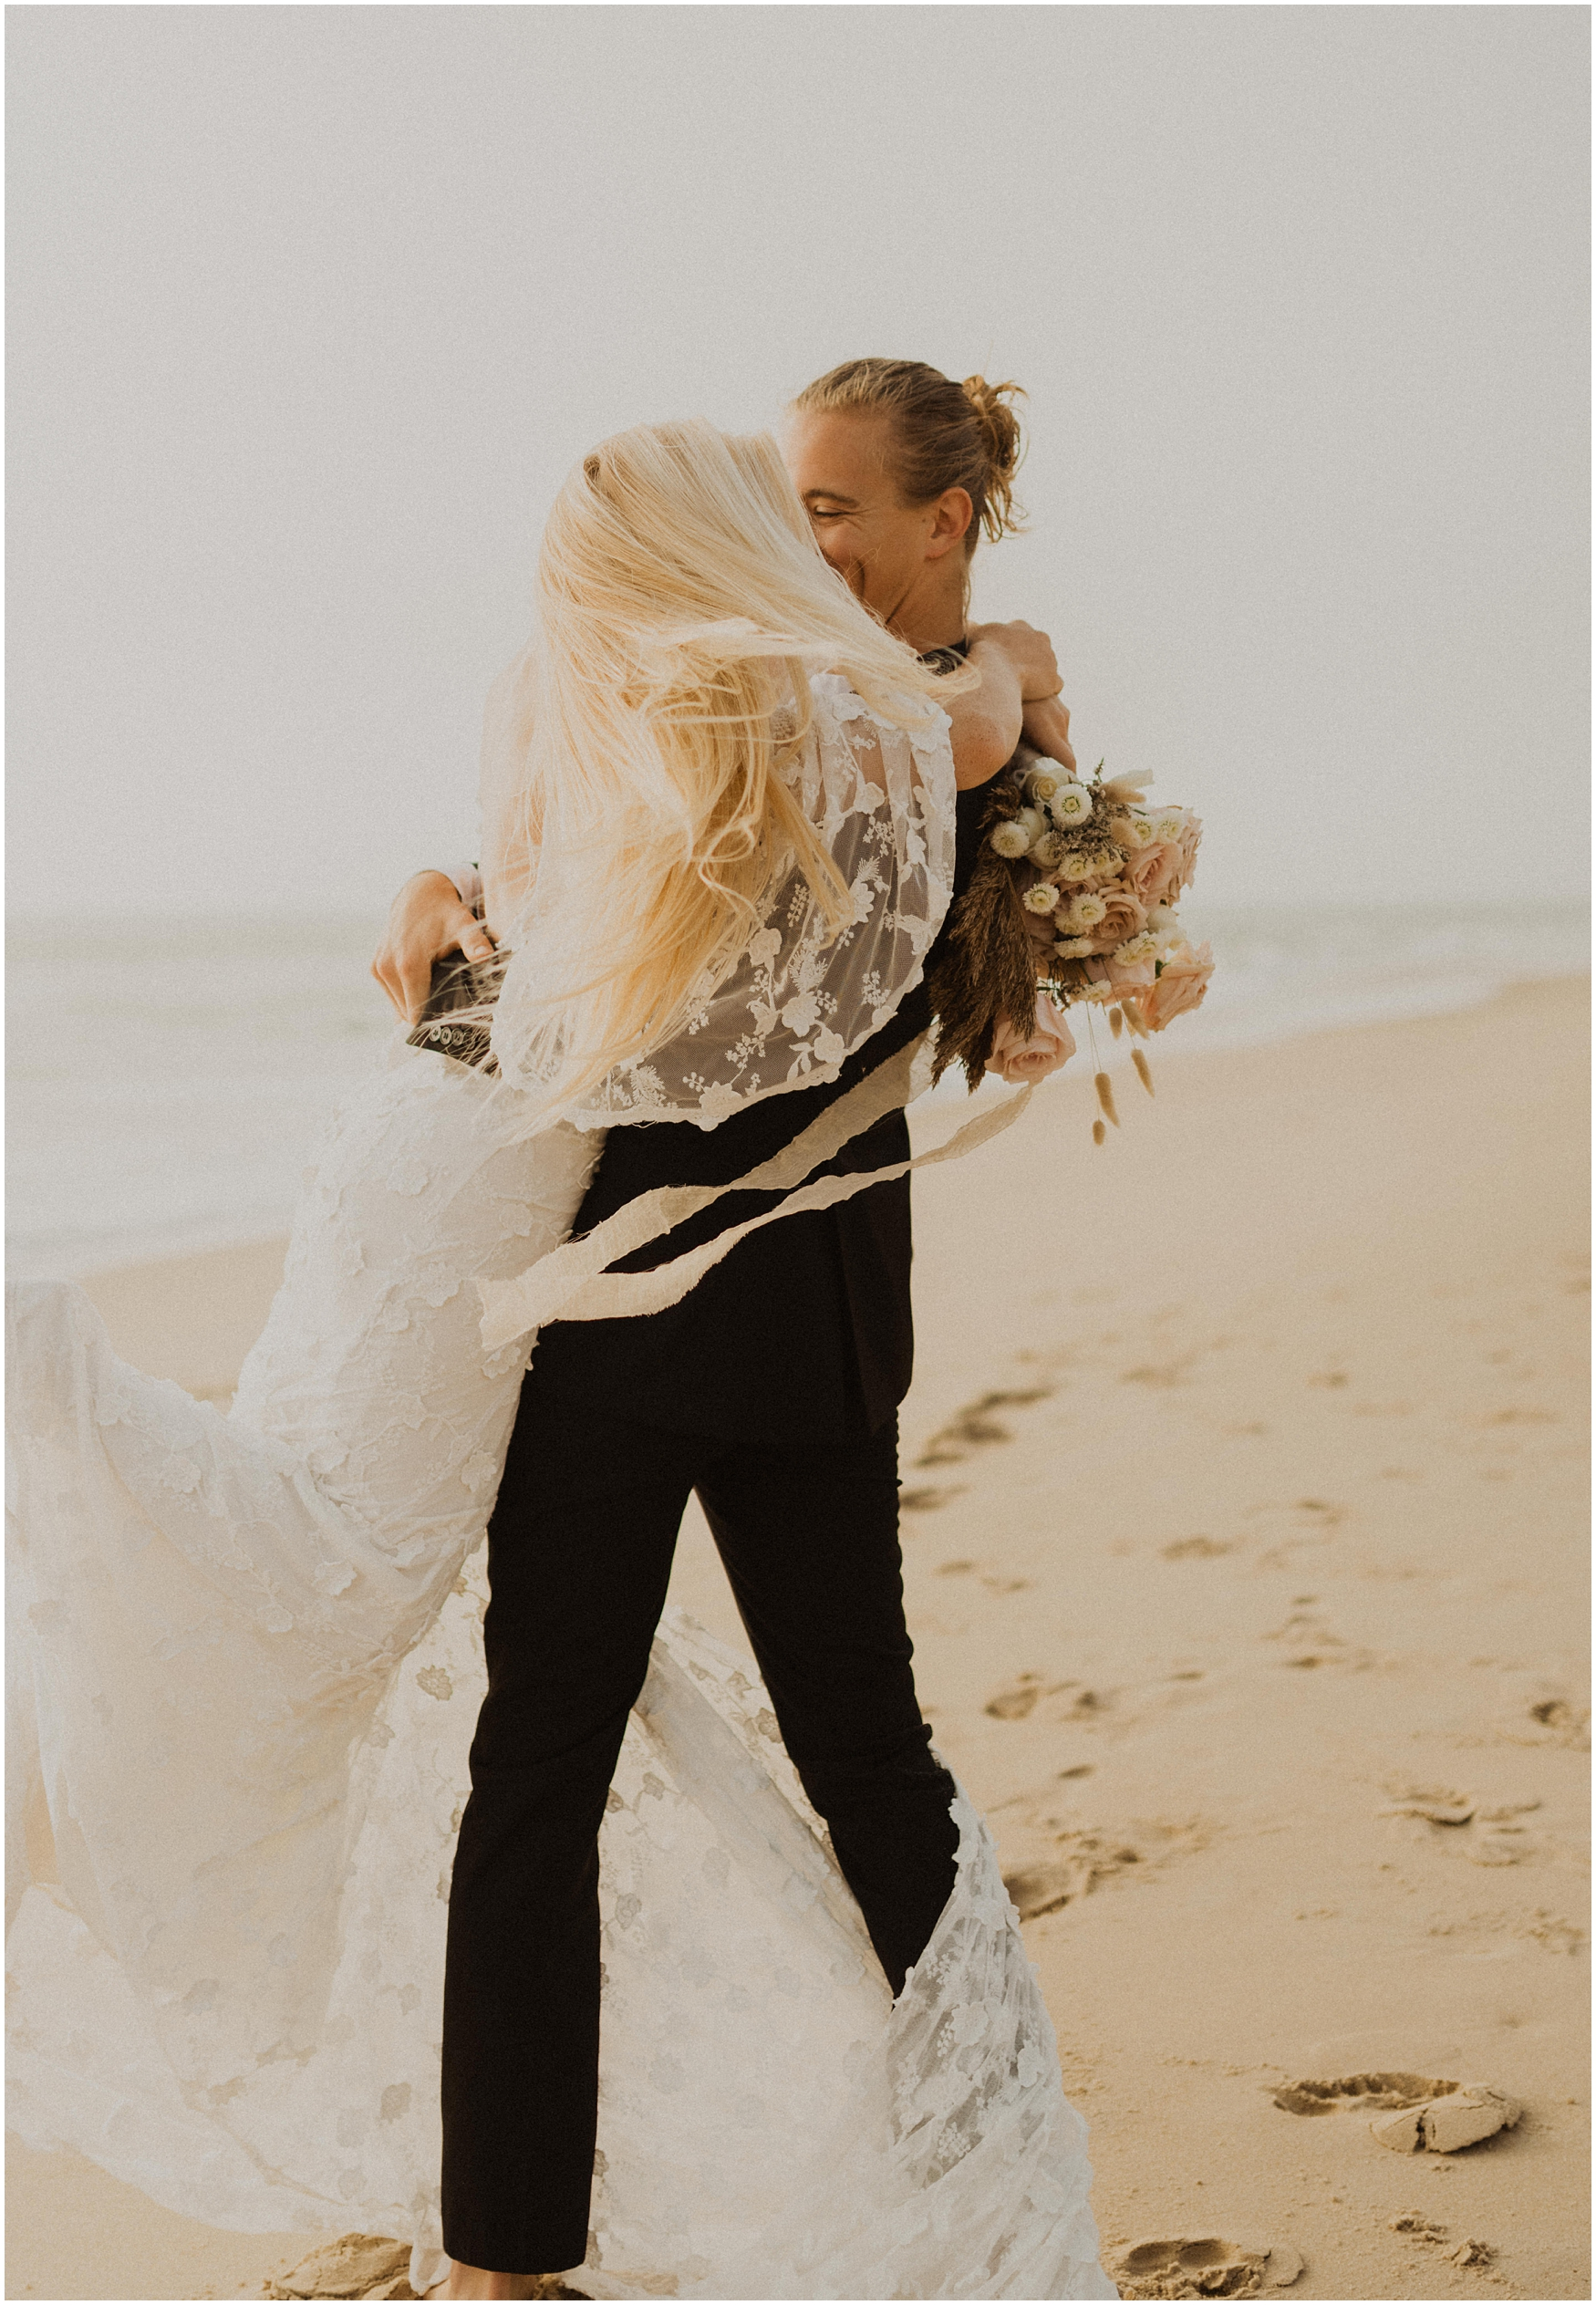 Hannah_Baldwin_Photography_Virginia_Beach_Elopement_Sunrise_0187.jpg